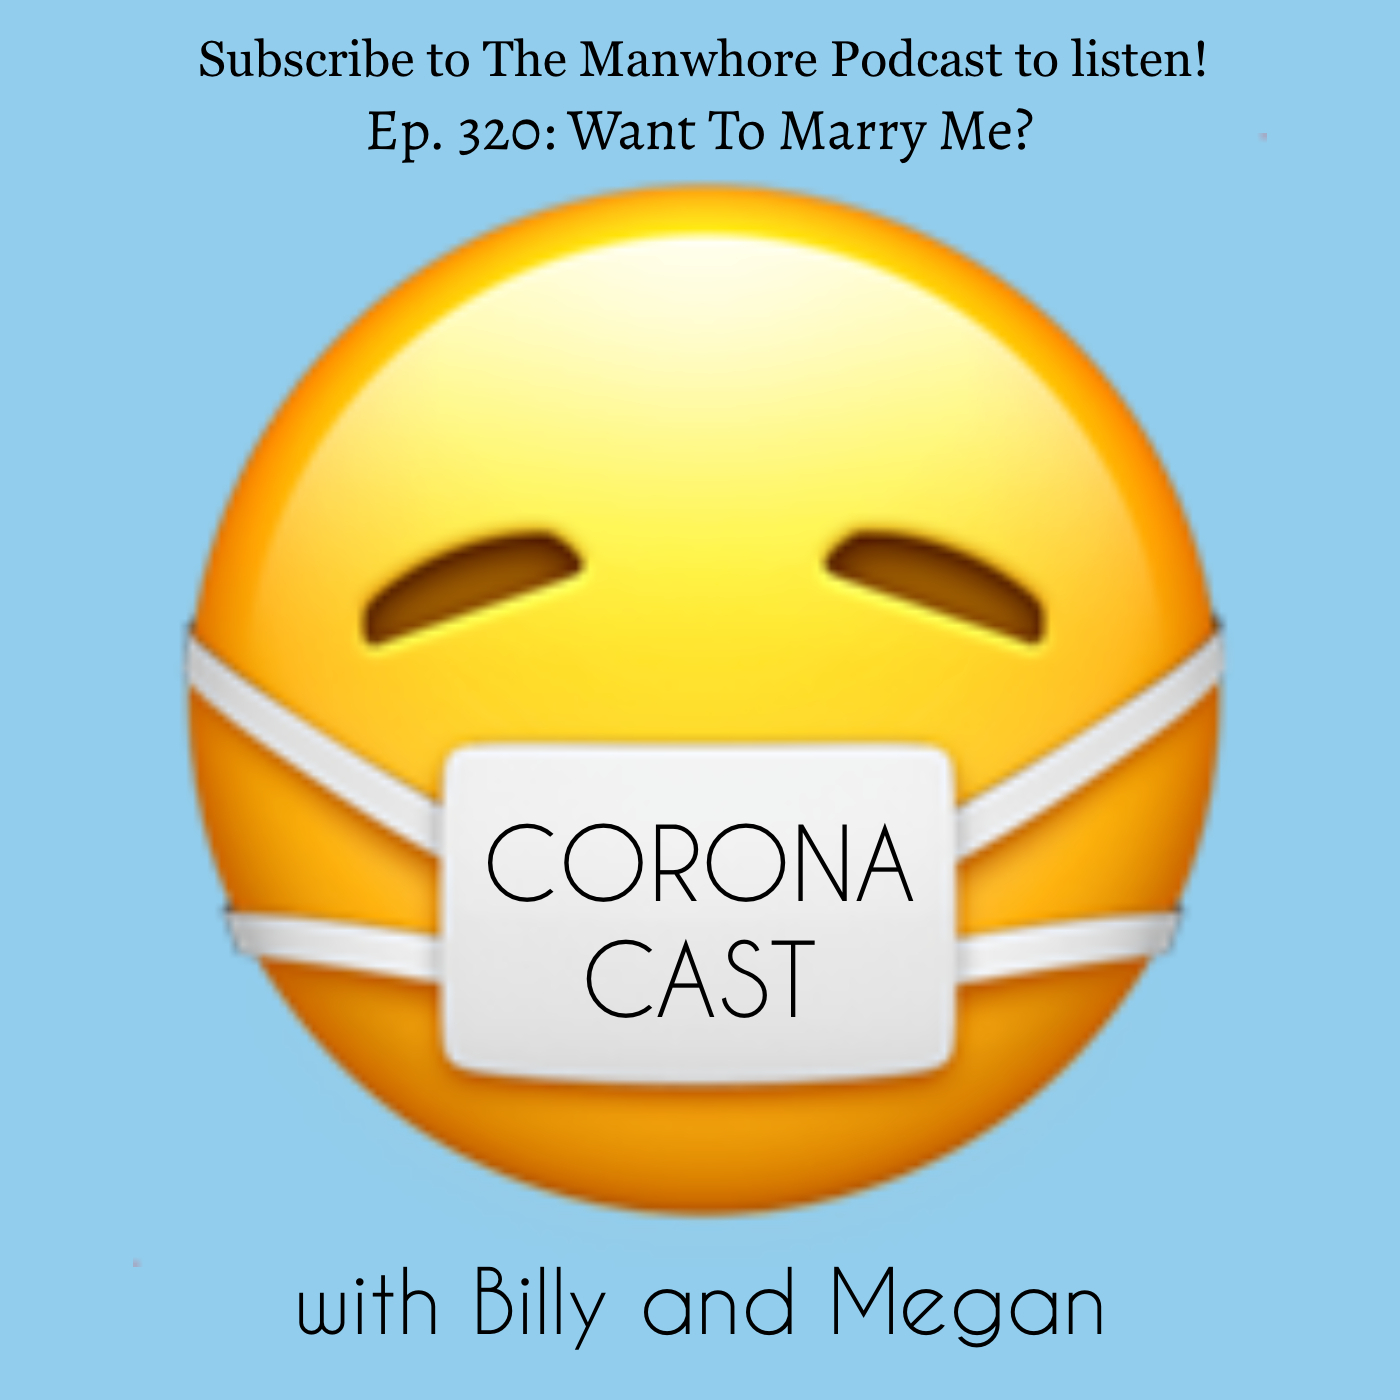 The Manwhore Podcast: A Sex-Positive Quest - Ep. 329: Corona Cast Part 10 - Wanna Get Married?